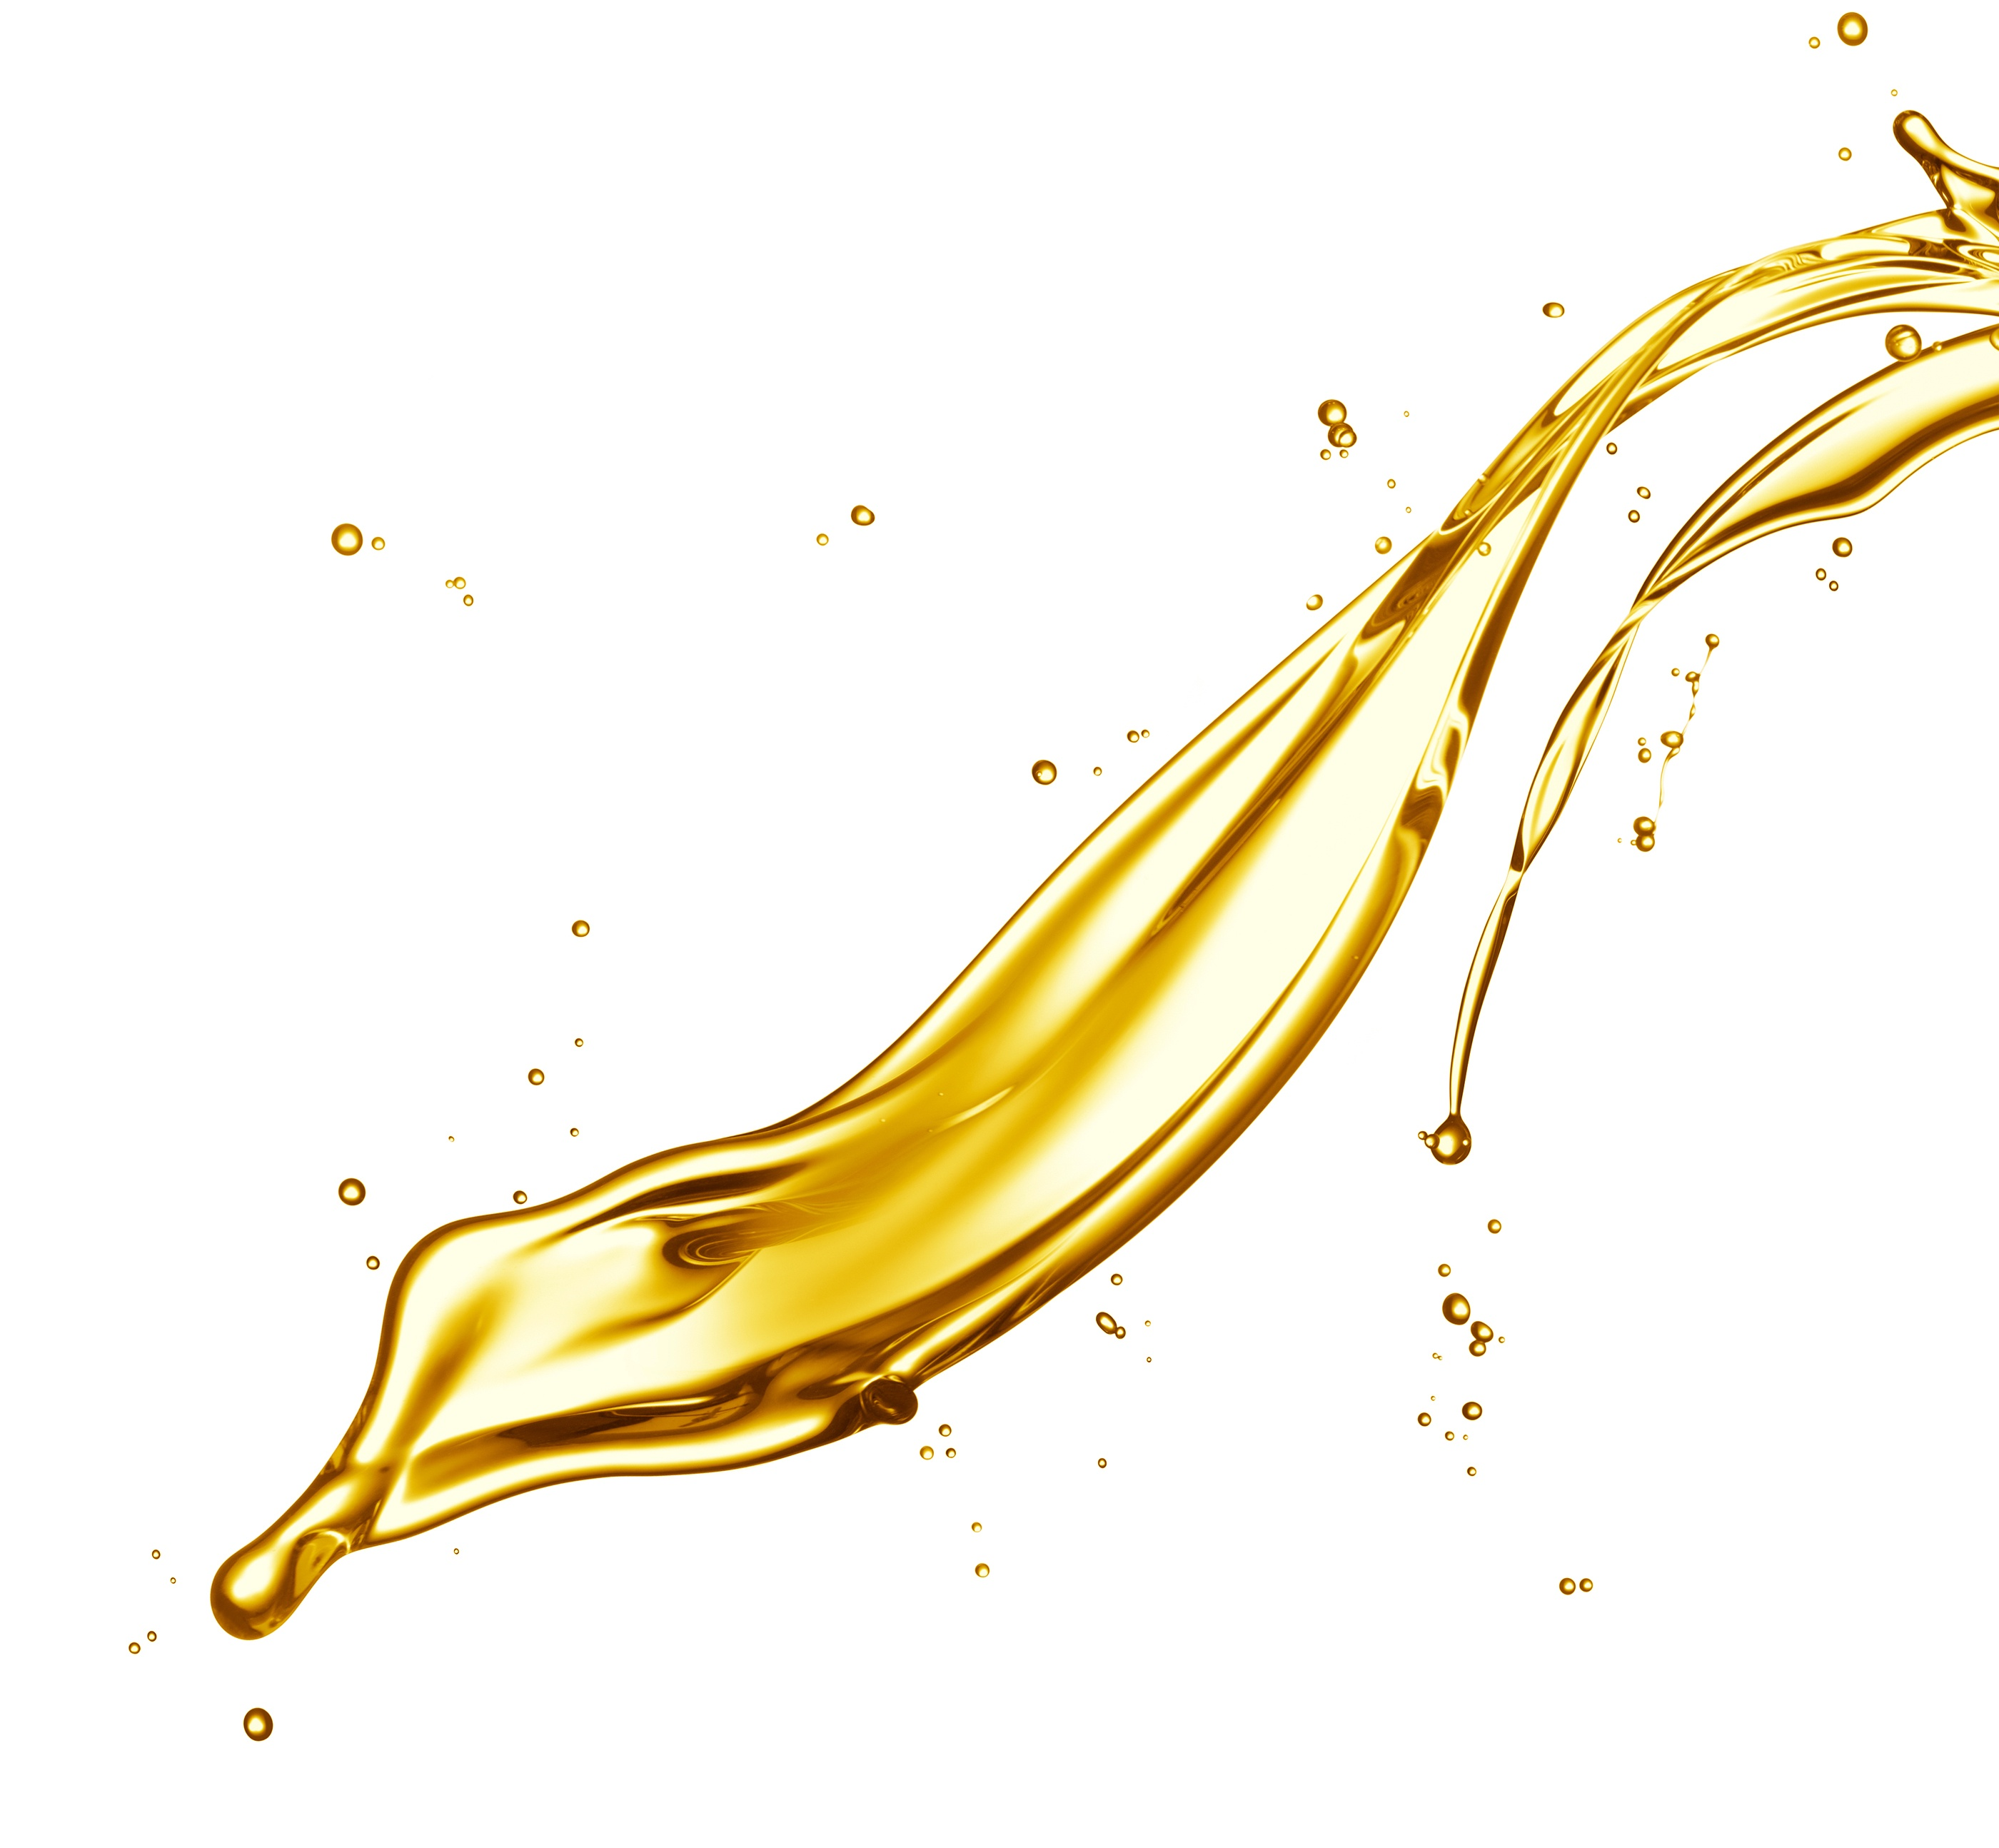 Oil Splash_BS_23706392.jpg